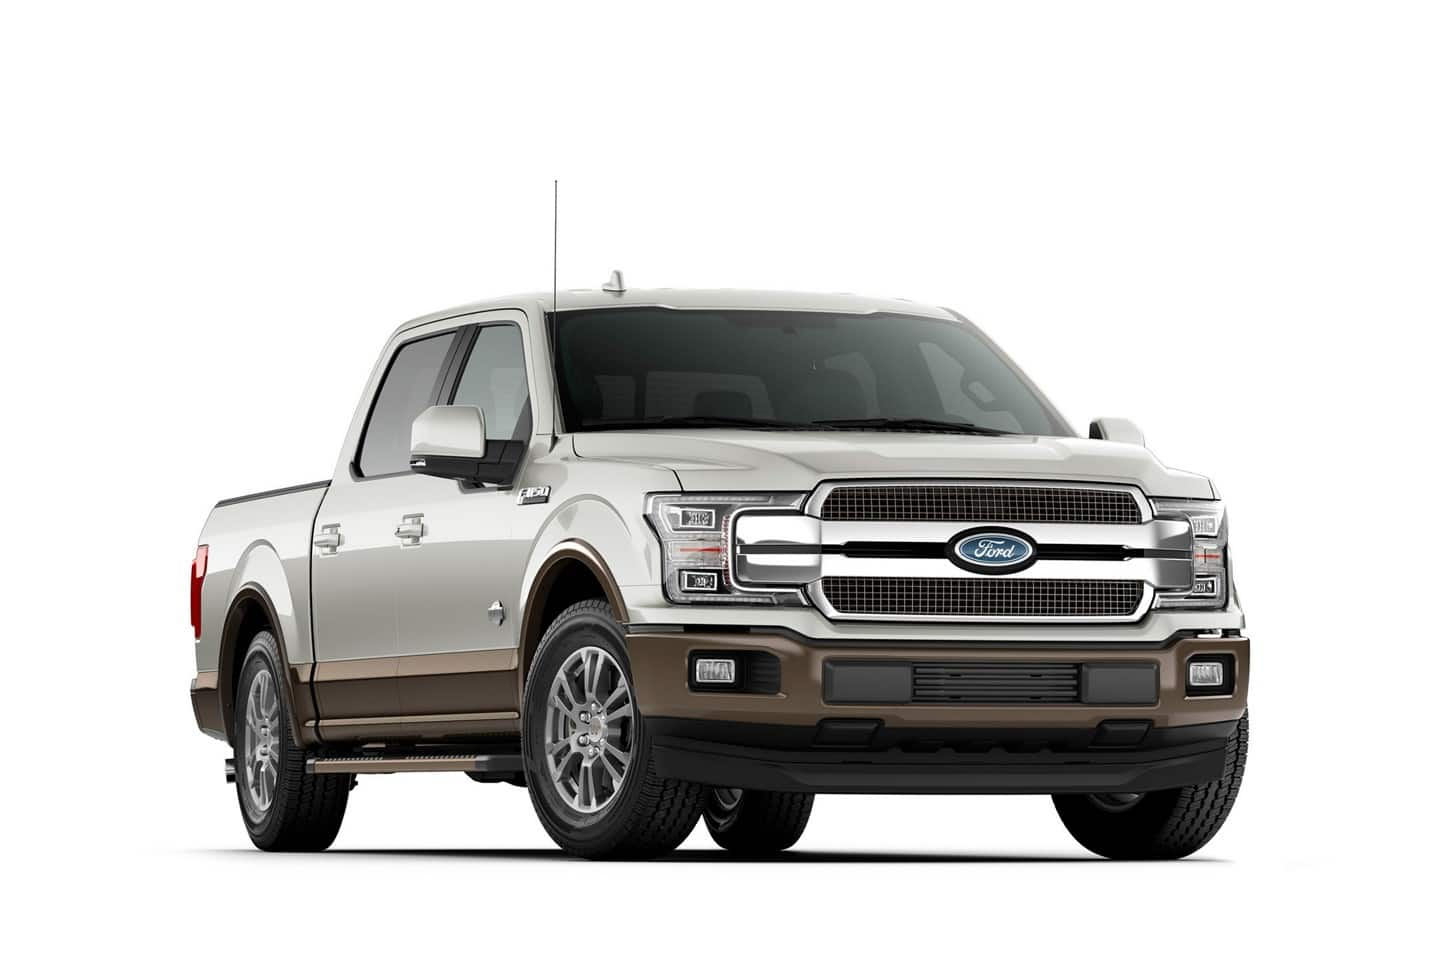 29 Great 2019 Ford King Ranch Configurations for 2019 Ford King Ranch